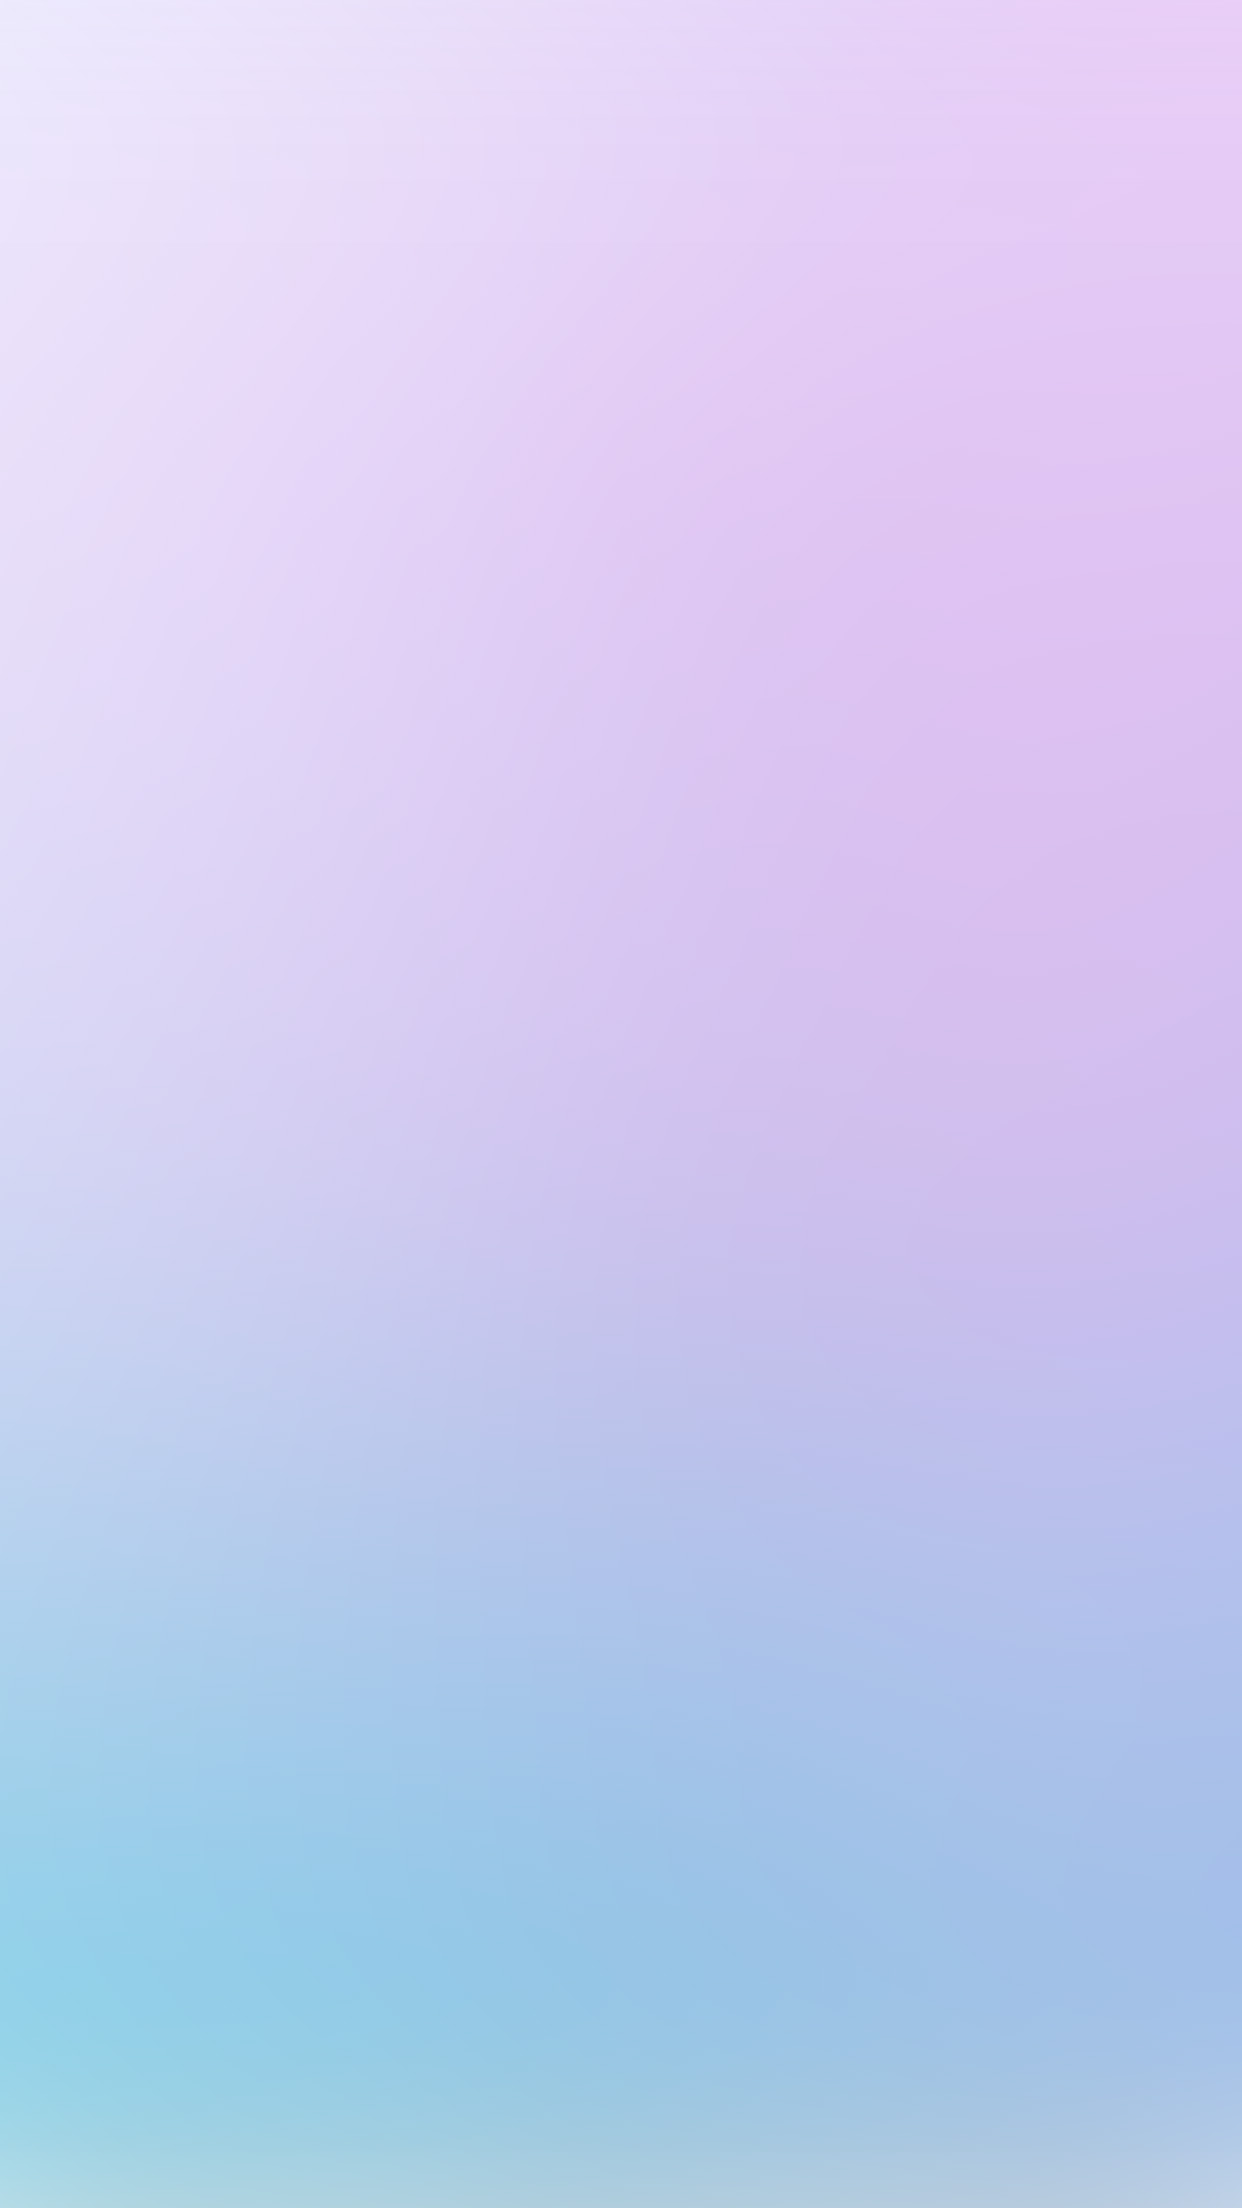 Purple Pastel wallpaper pictures